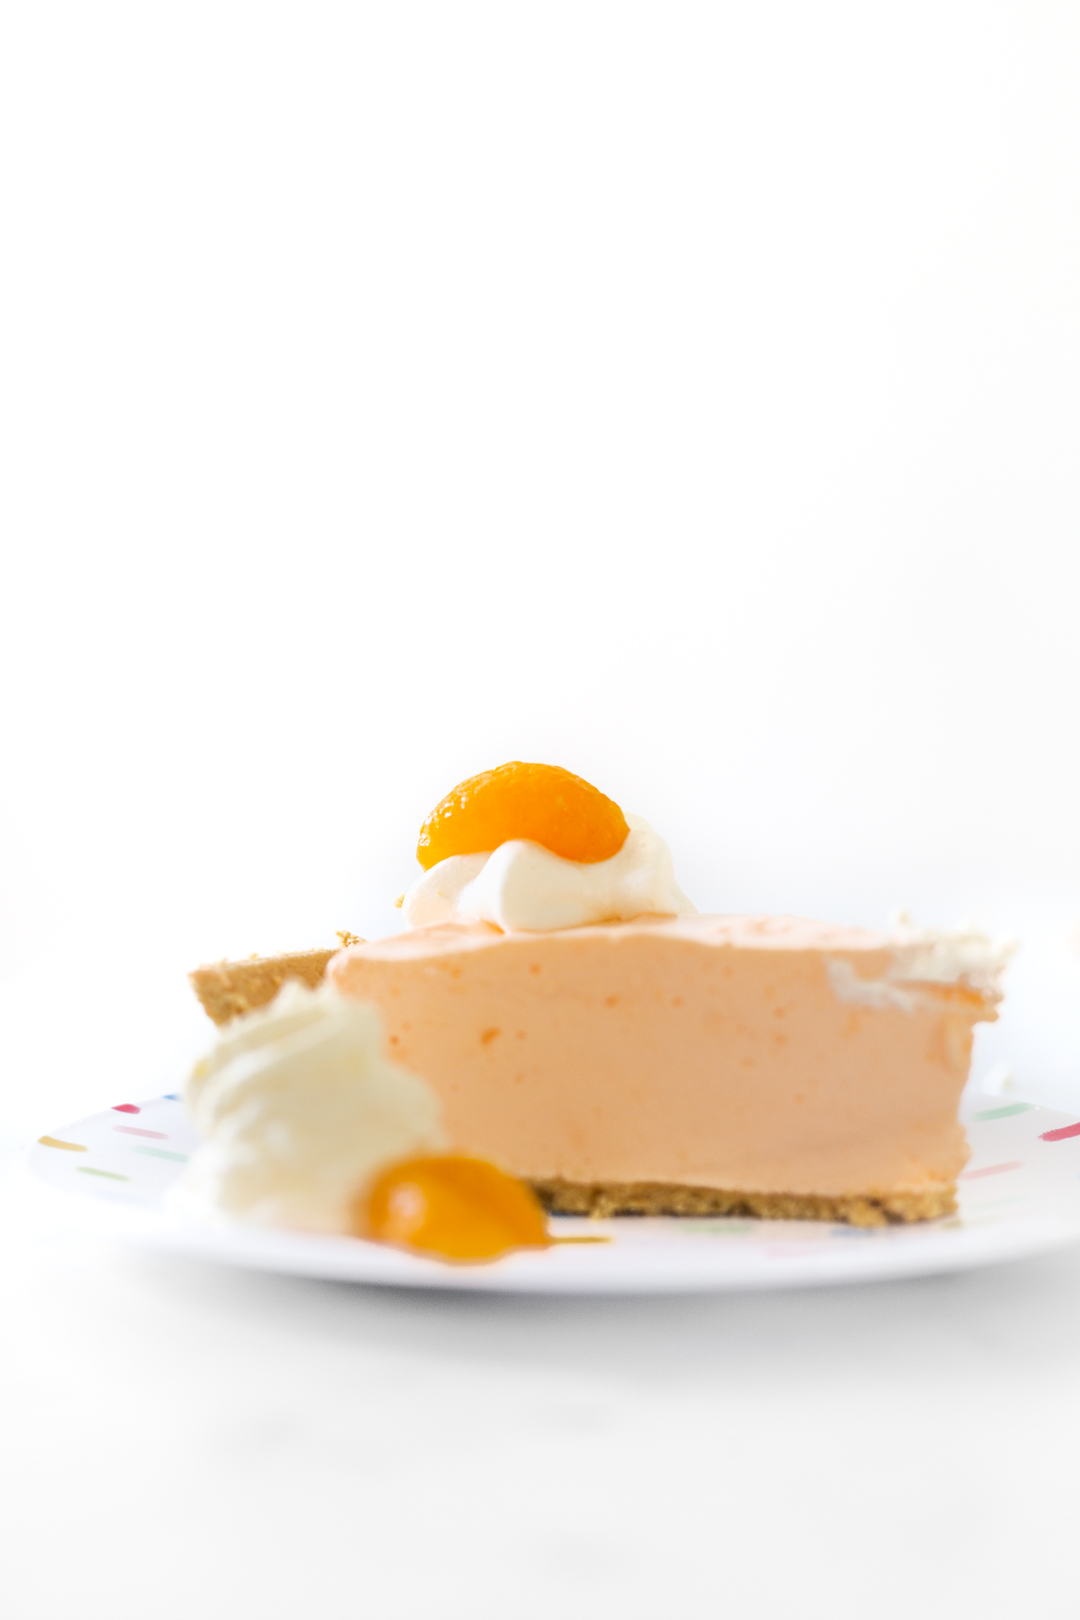 slice of pretty orange pie and topped with fruit garnish